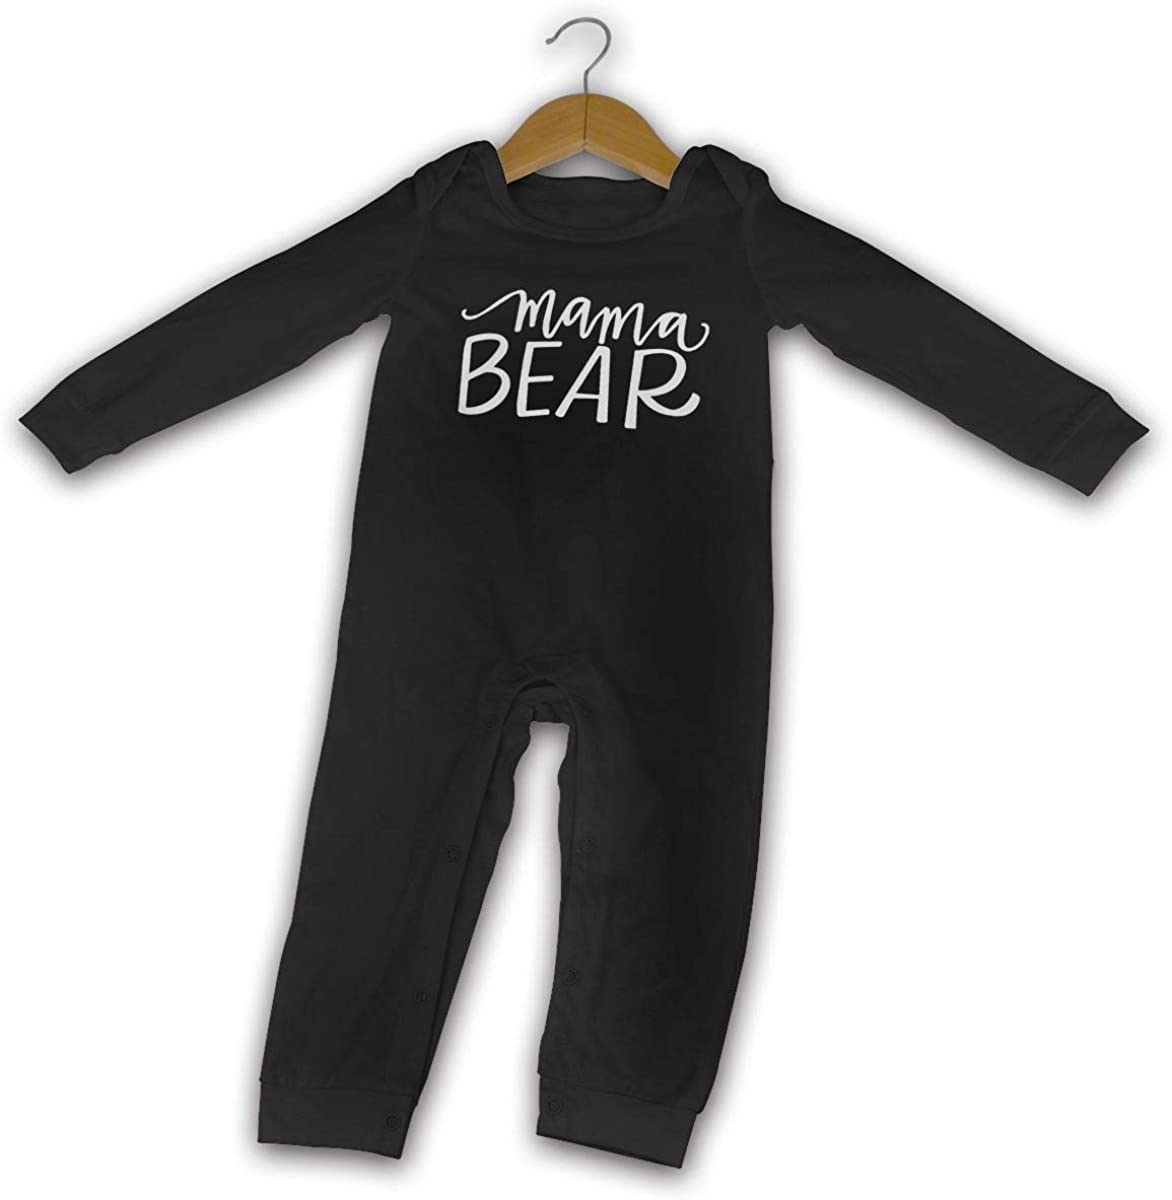 Mama Bear Printed Boys Girls One-Piece Suit Long Sleeve Romper Black